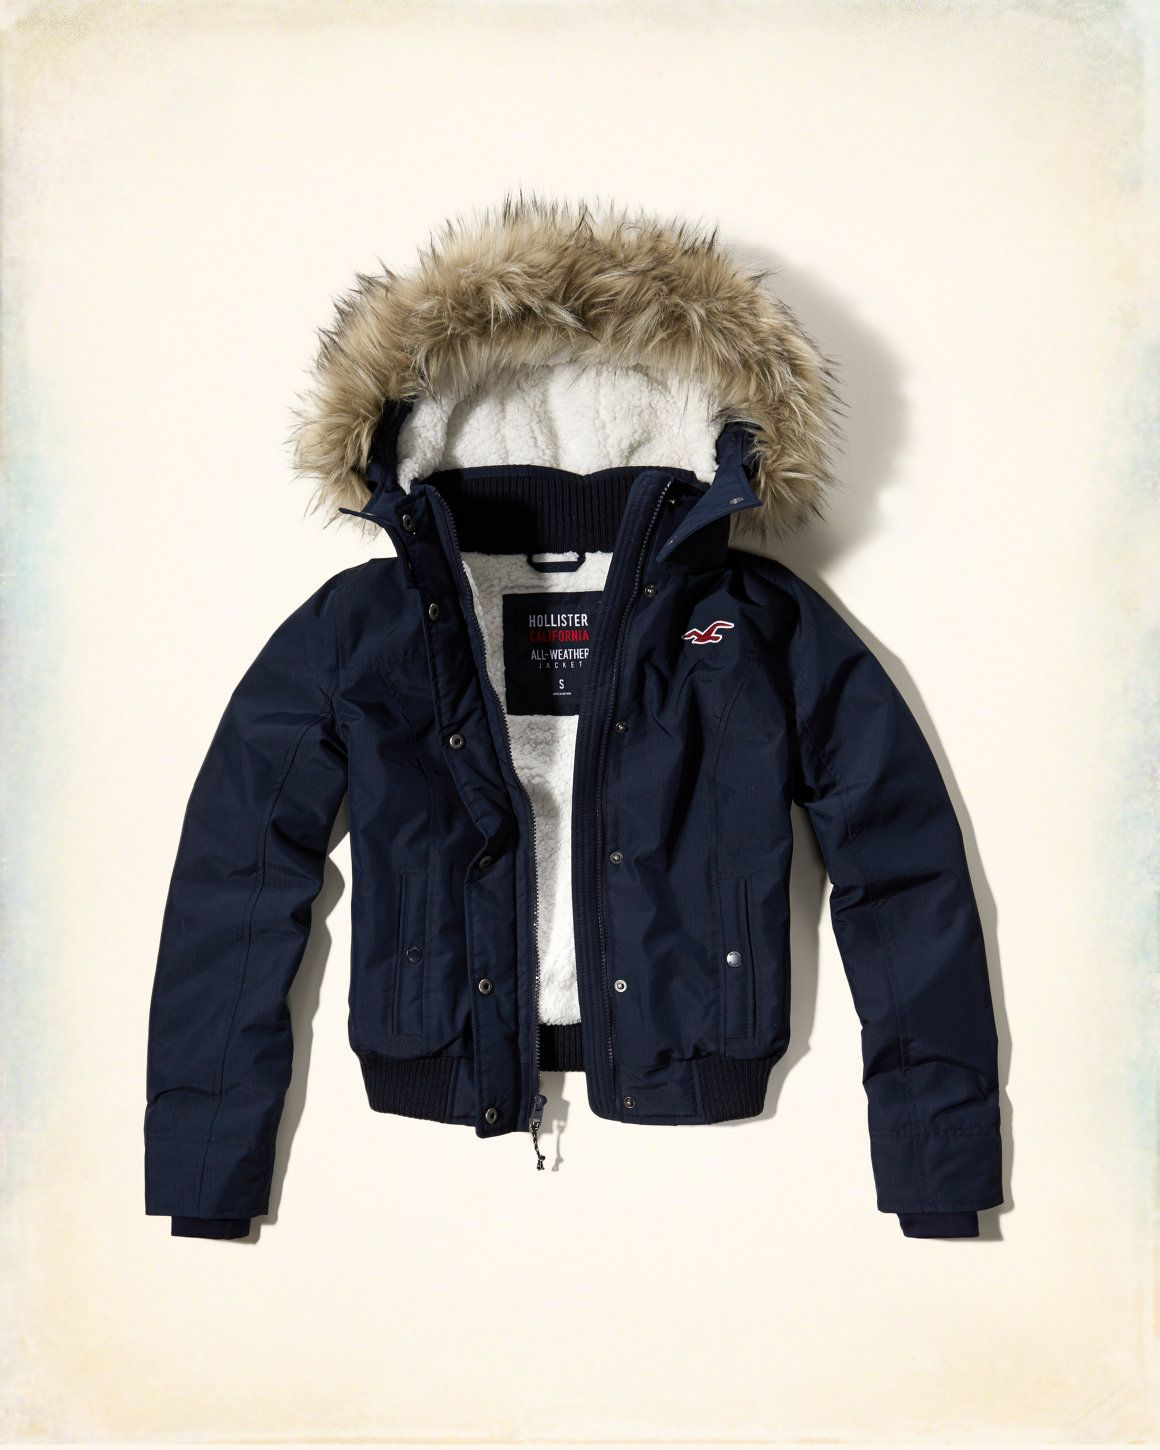 9b971867c Girls Hollister All-Weather Sherpa Lined Bomber Jacket